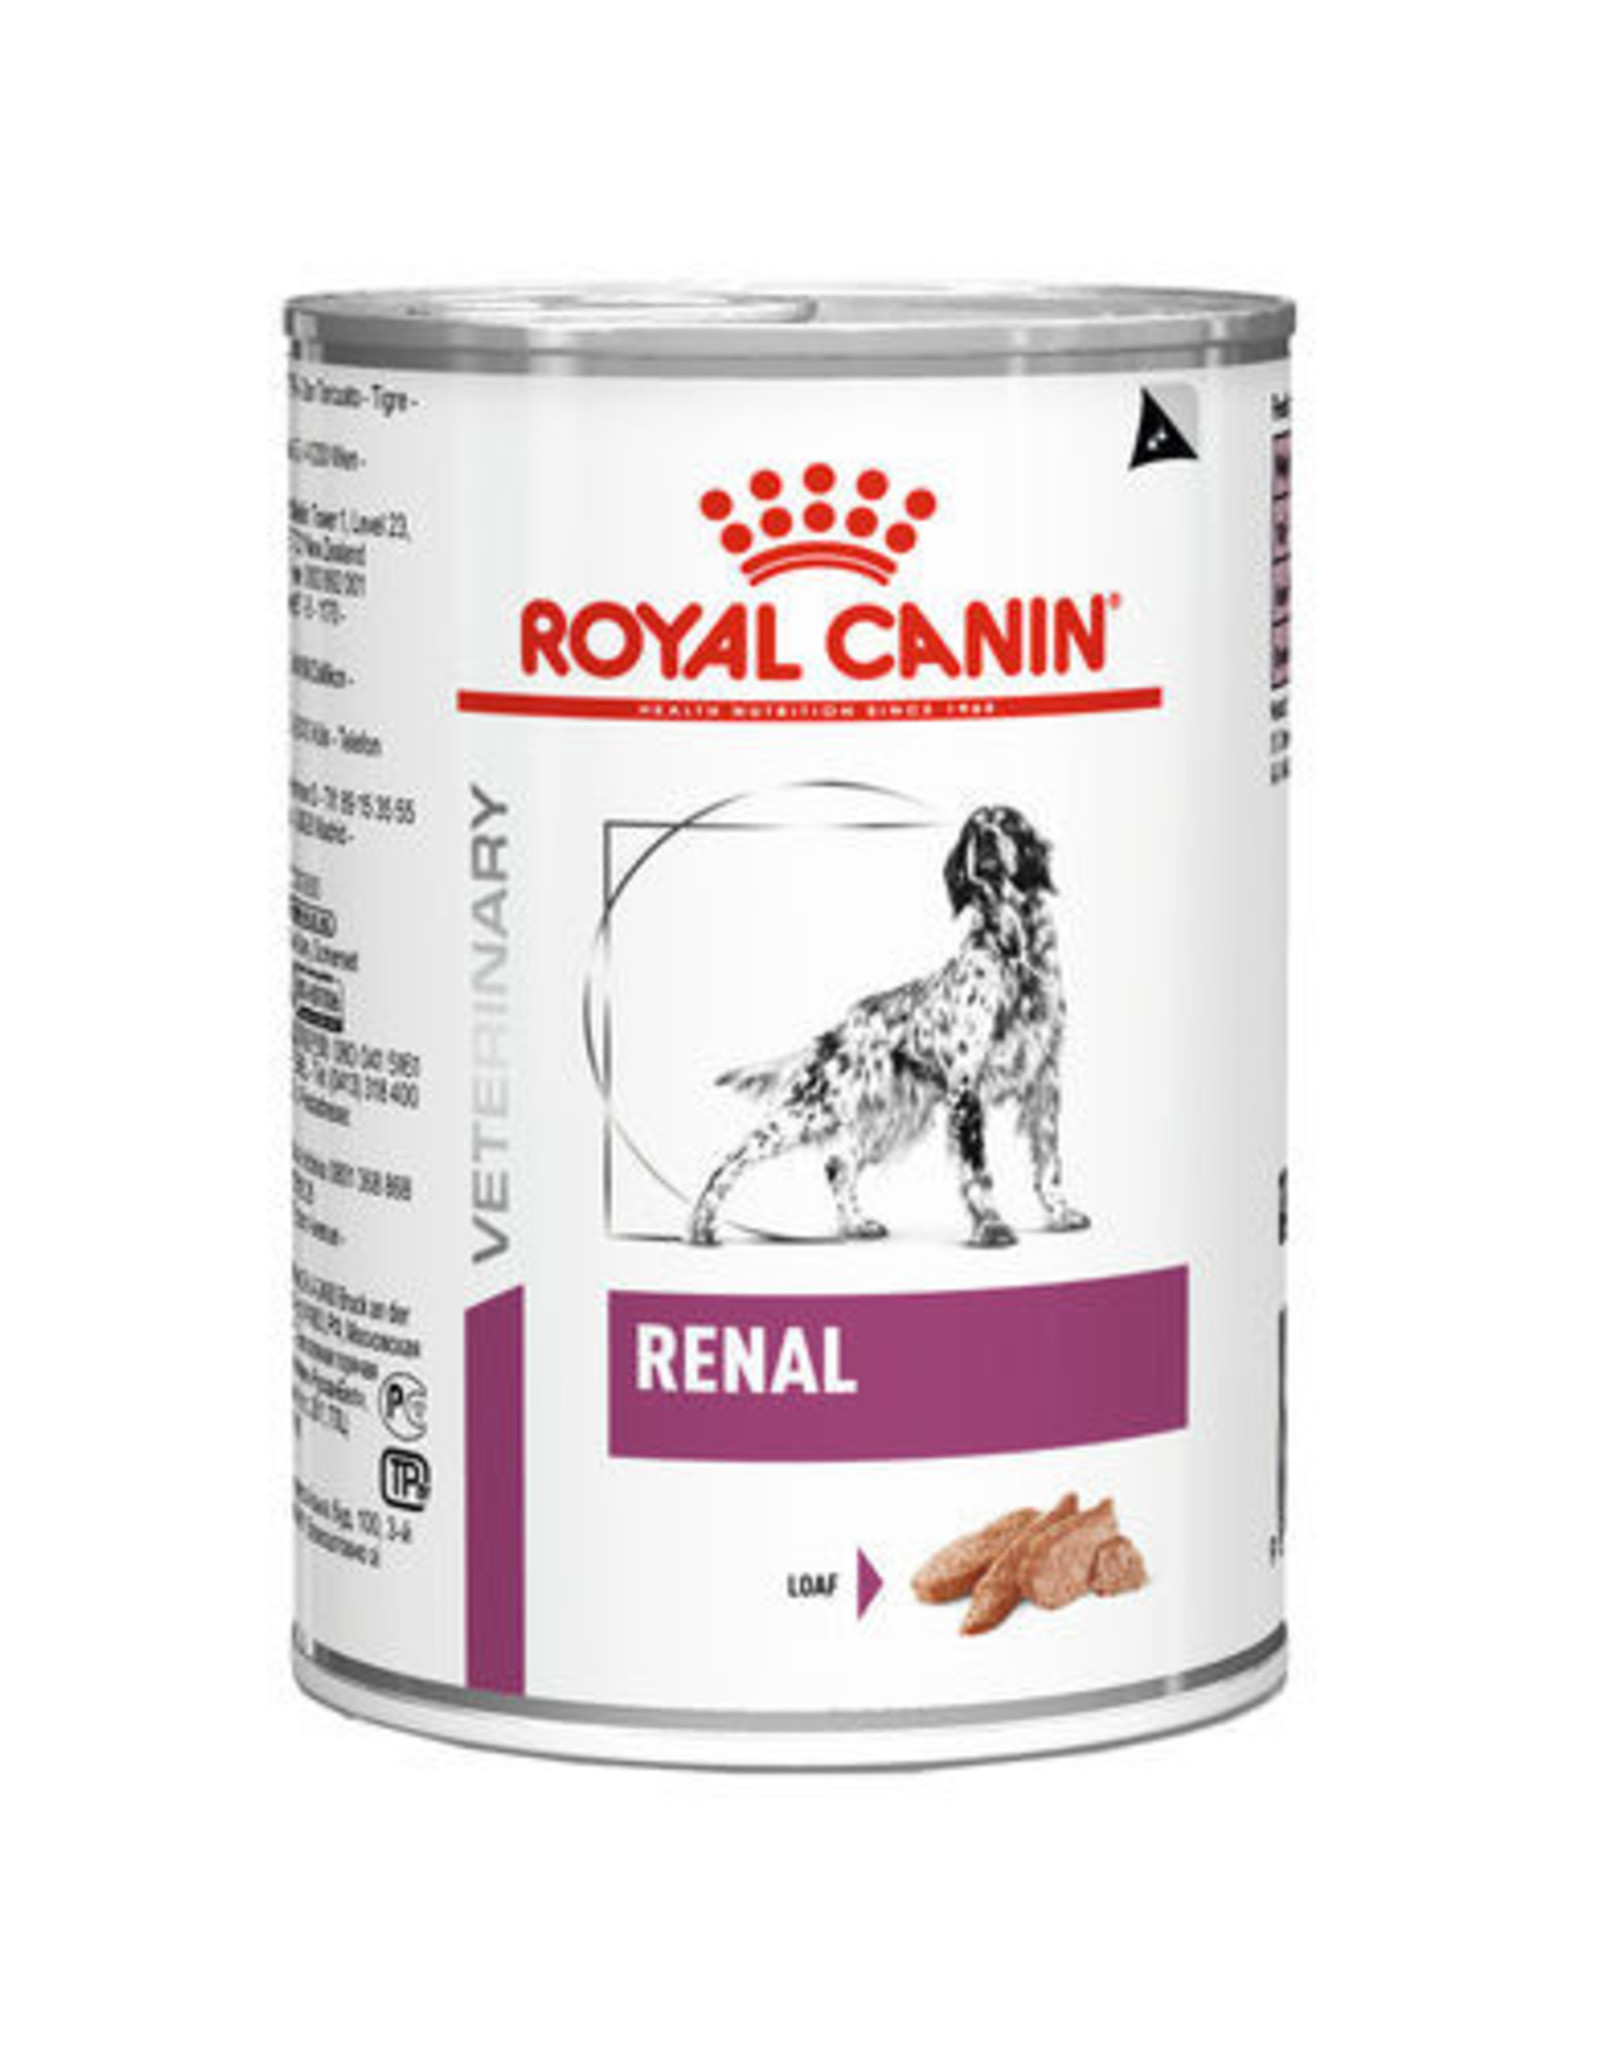 Royal Canin Royal Canin Vdiet Renal Chien 12x410g